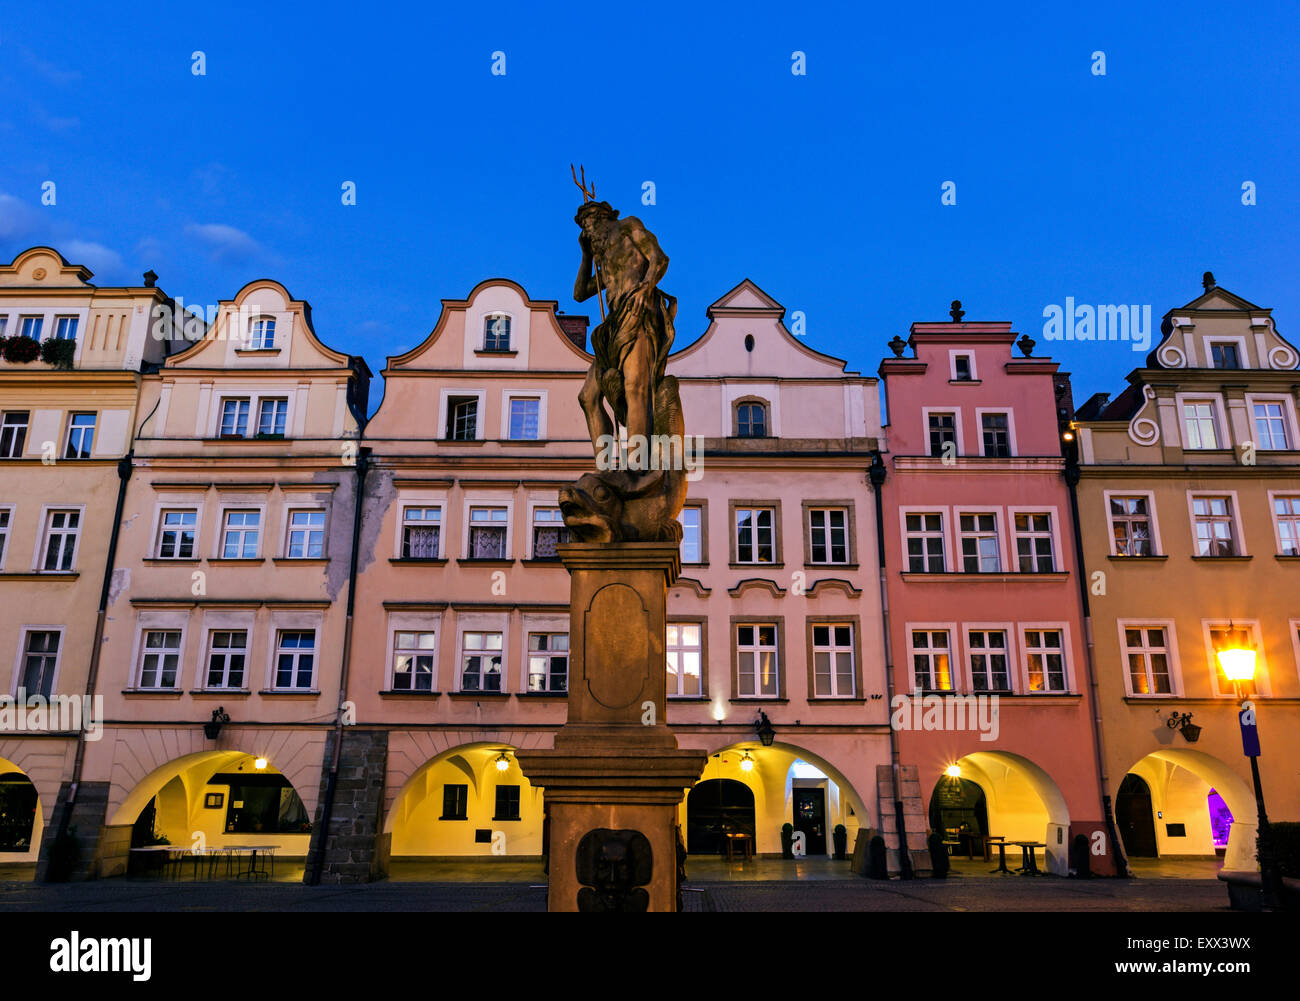 Statues and facades of old town houses - Stock Image